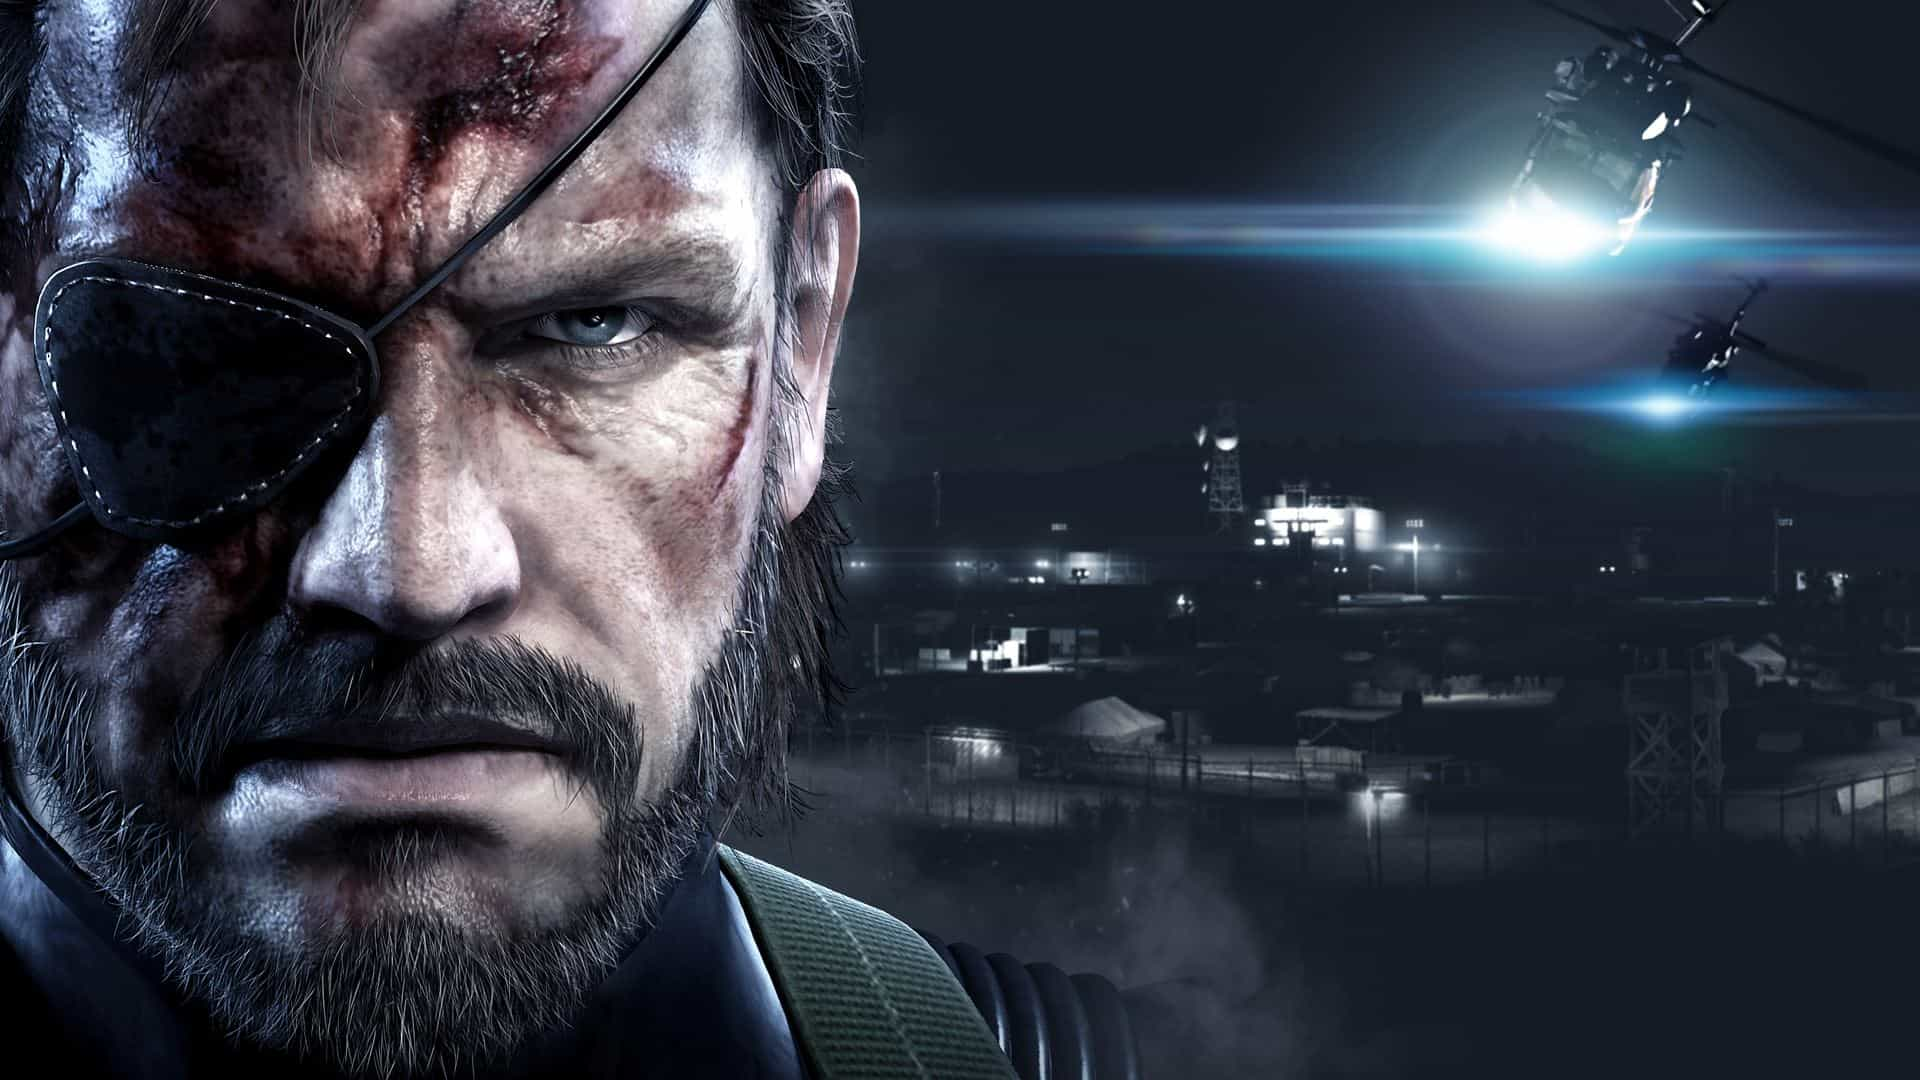 Metal Gear Solid V: Ground Zeroes Save Game - Save File Download